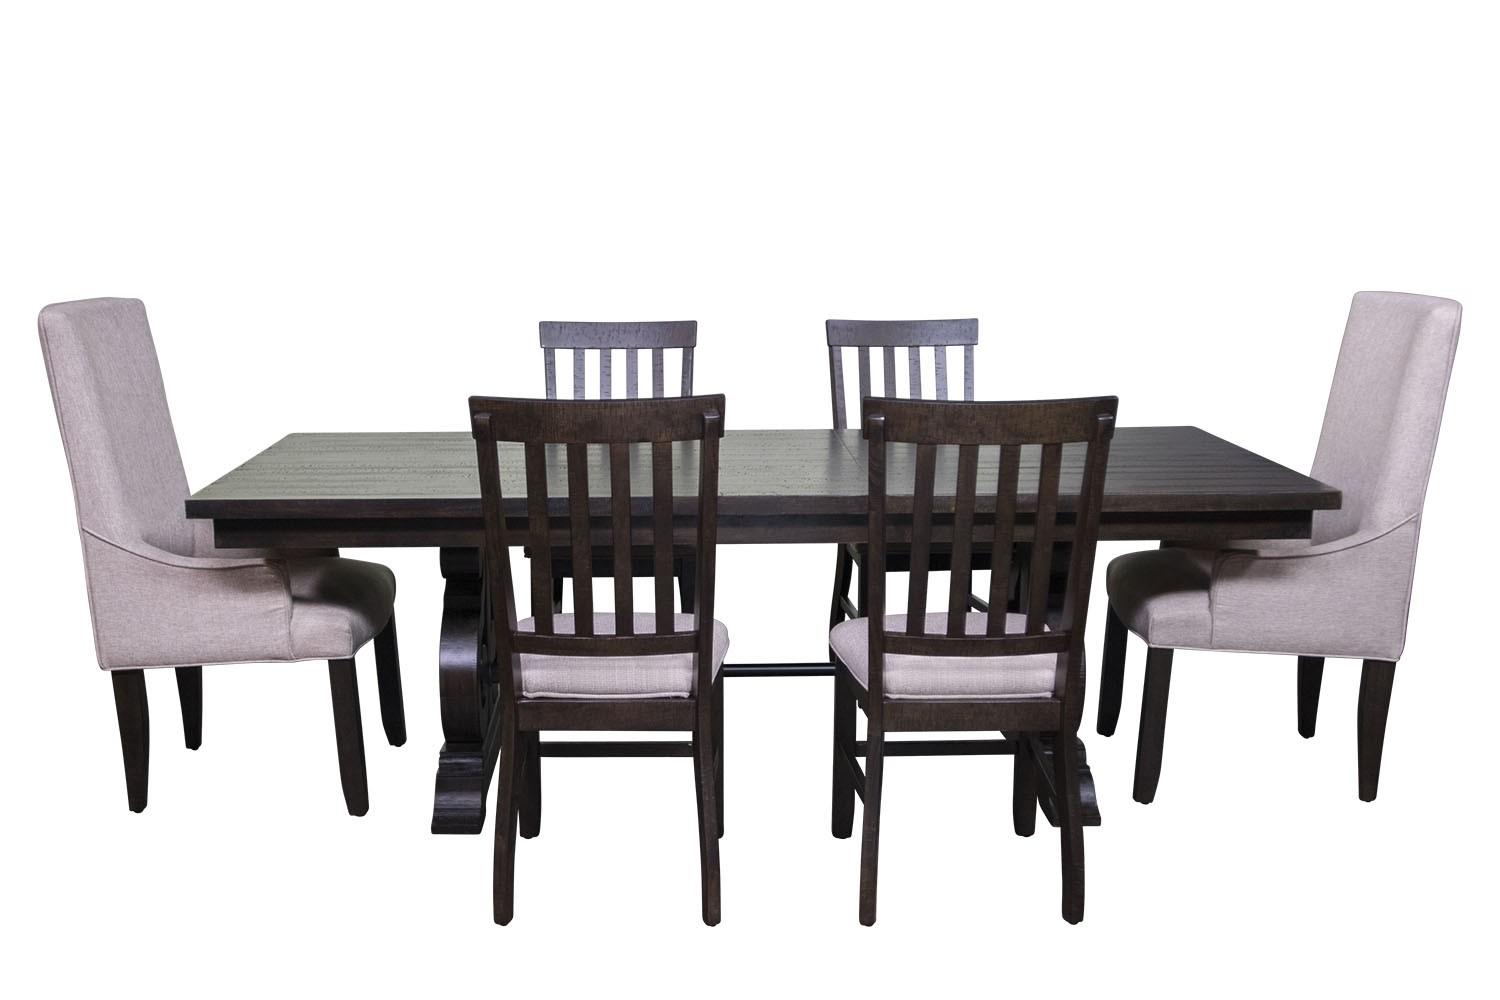 The Stone Dining Room Collection | Mor Furniture for Less